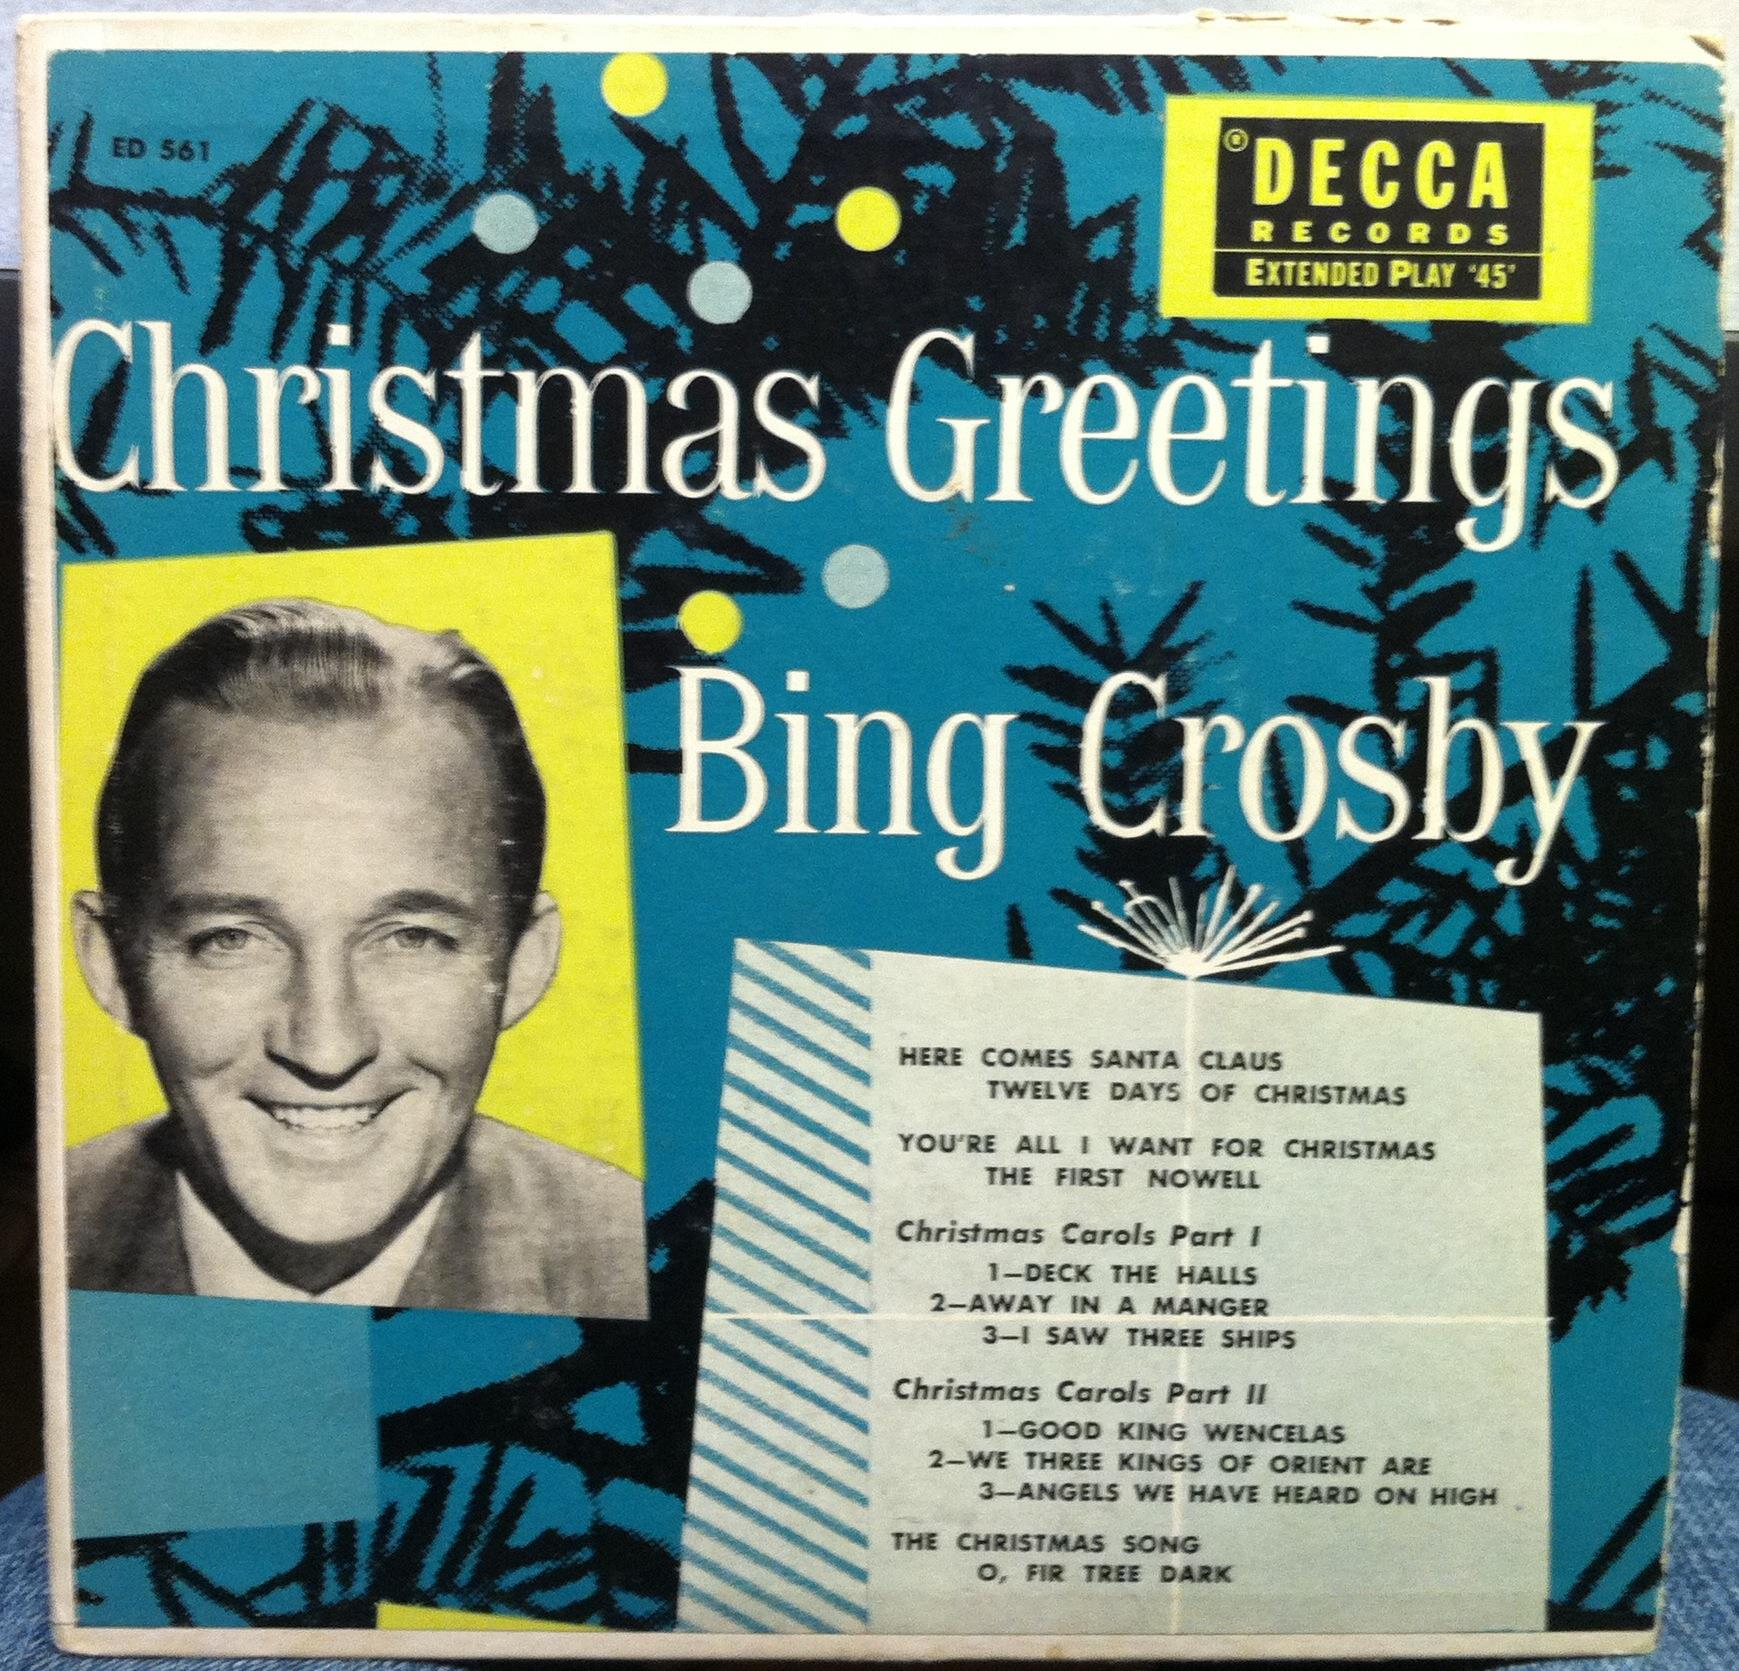 christian singles in crosby Listen free to bing crosby – bing crosby sings christmas songs (white christmas, silent night and more) 15 tracks (44:08) discover more music, concerts, videos, and pictures with the largest catalogue online at lastfm.